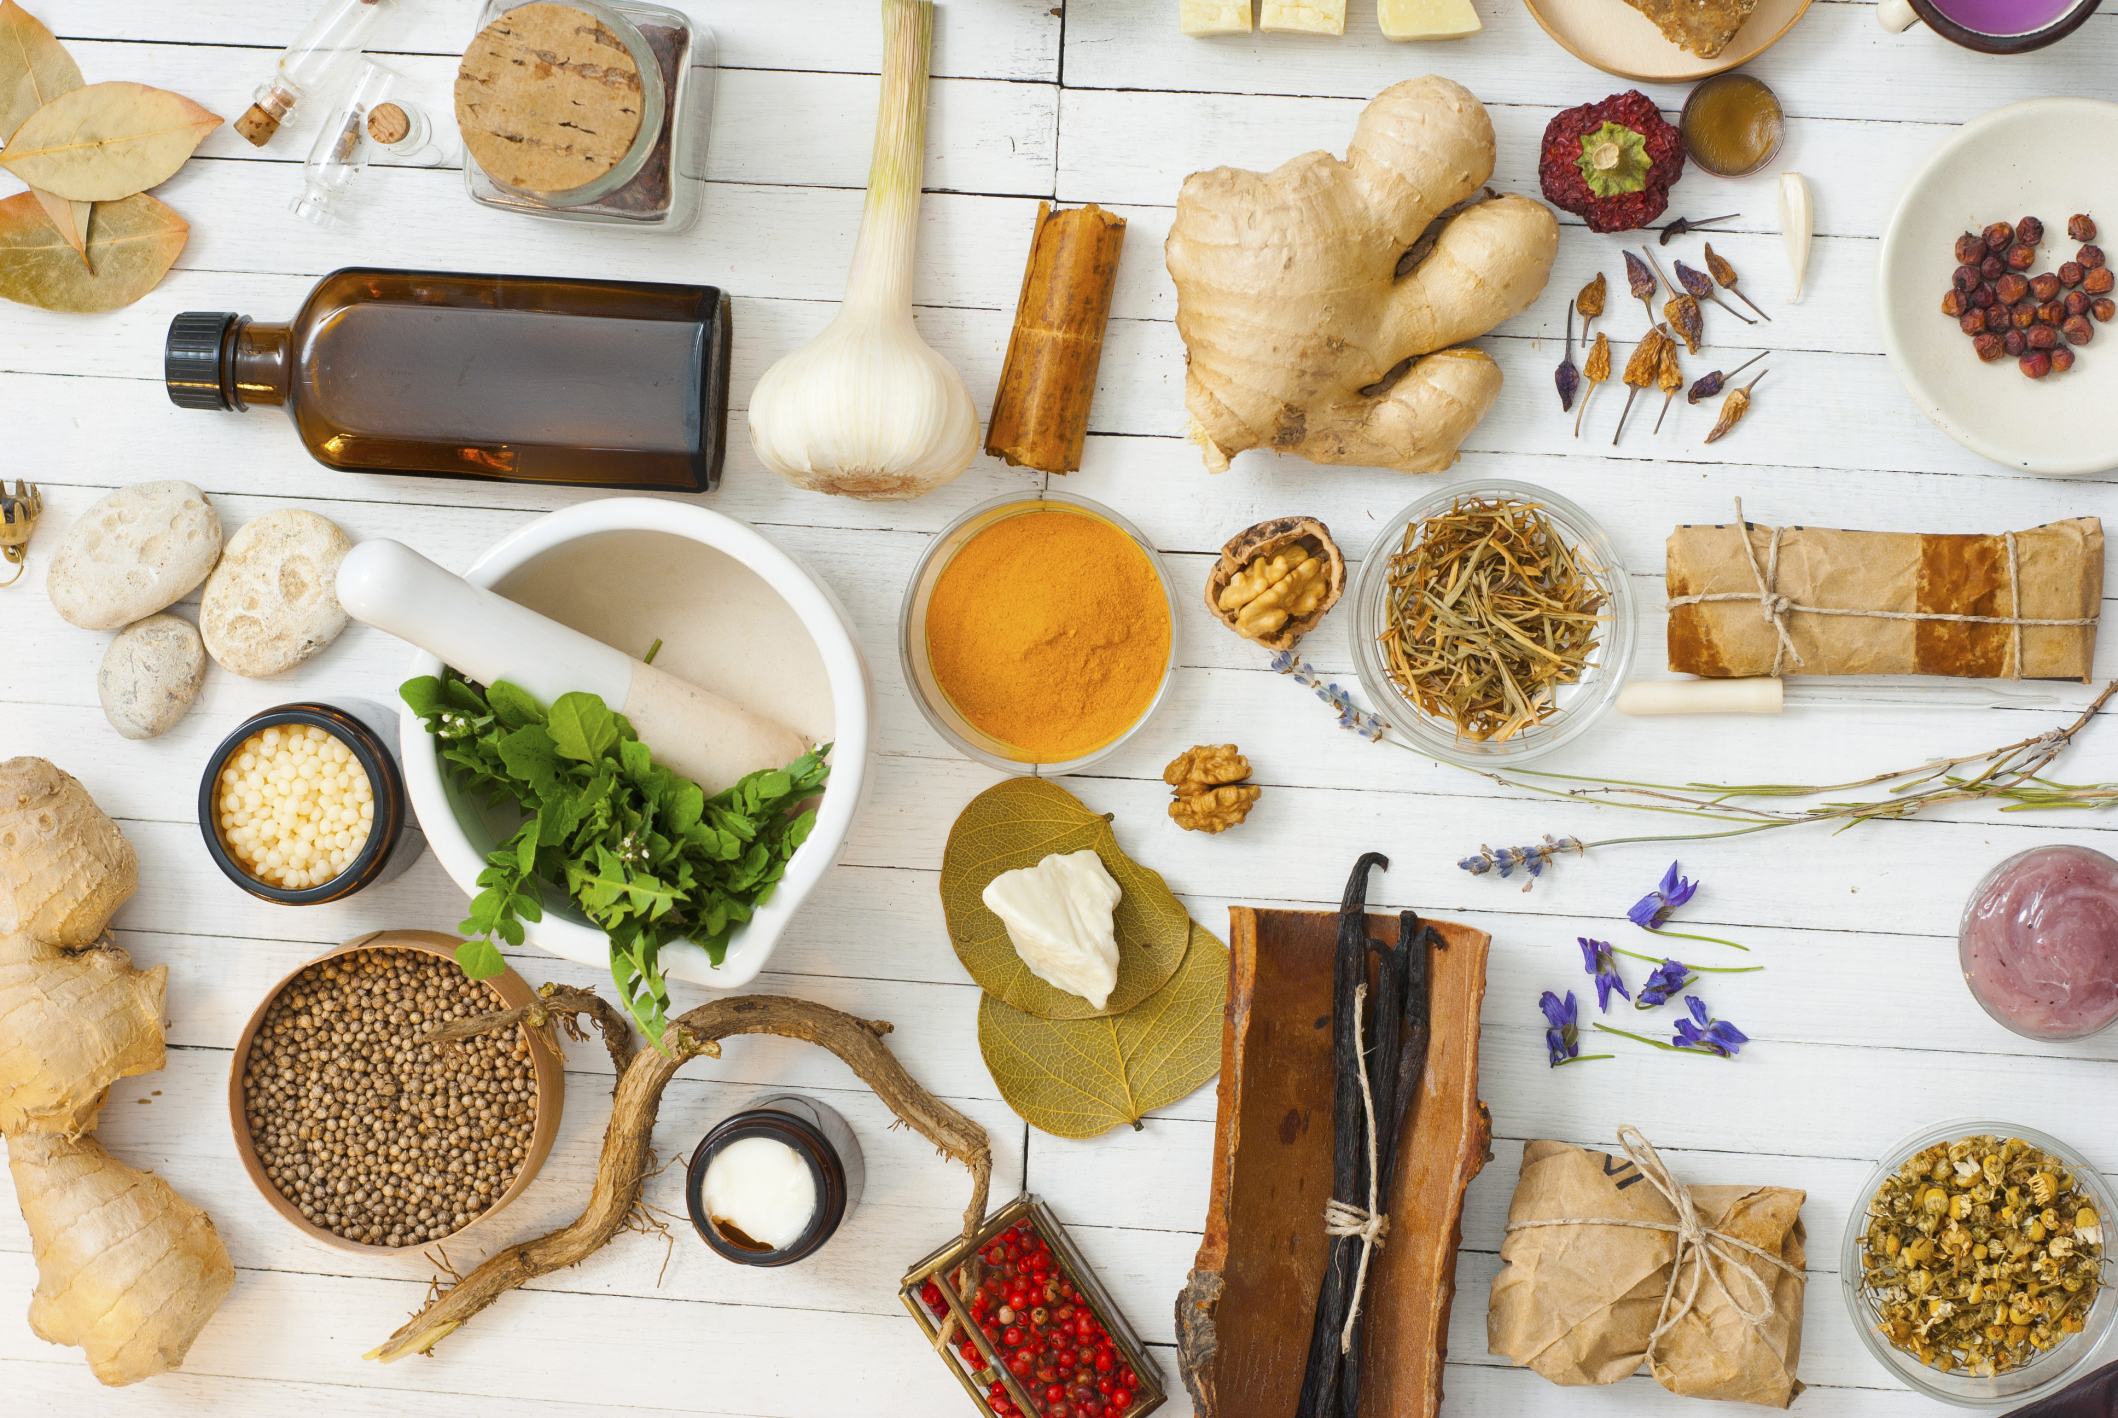 Benefits of Integrative Medicine